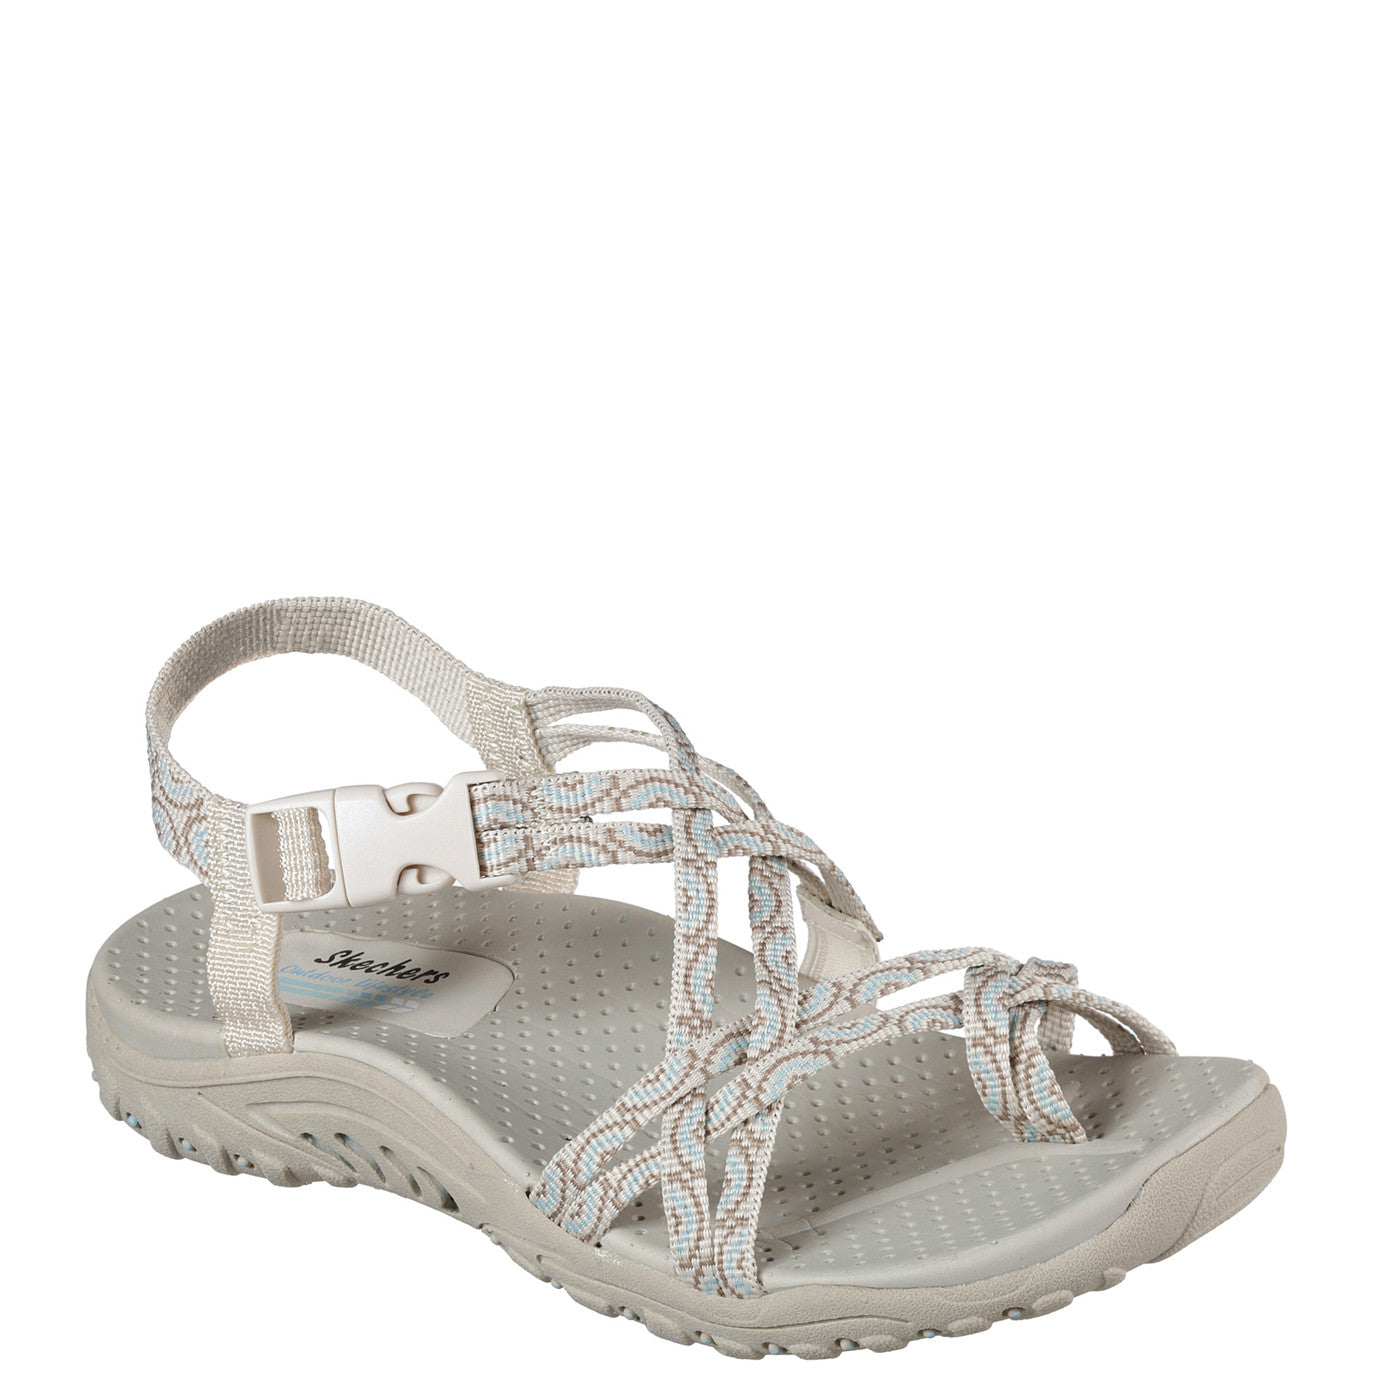 Women's Skechers Reggae Happy Rainbow 40881 Outdoor Sandals the cheapest for sale best place cheap online store sale online professional cheap online 3iykxSgR